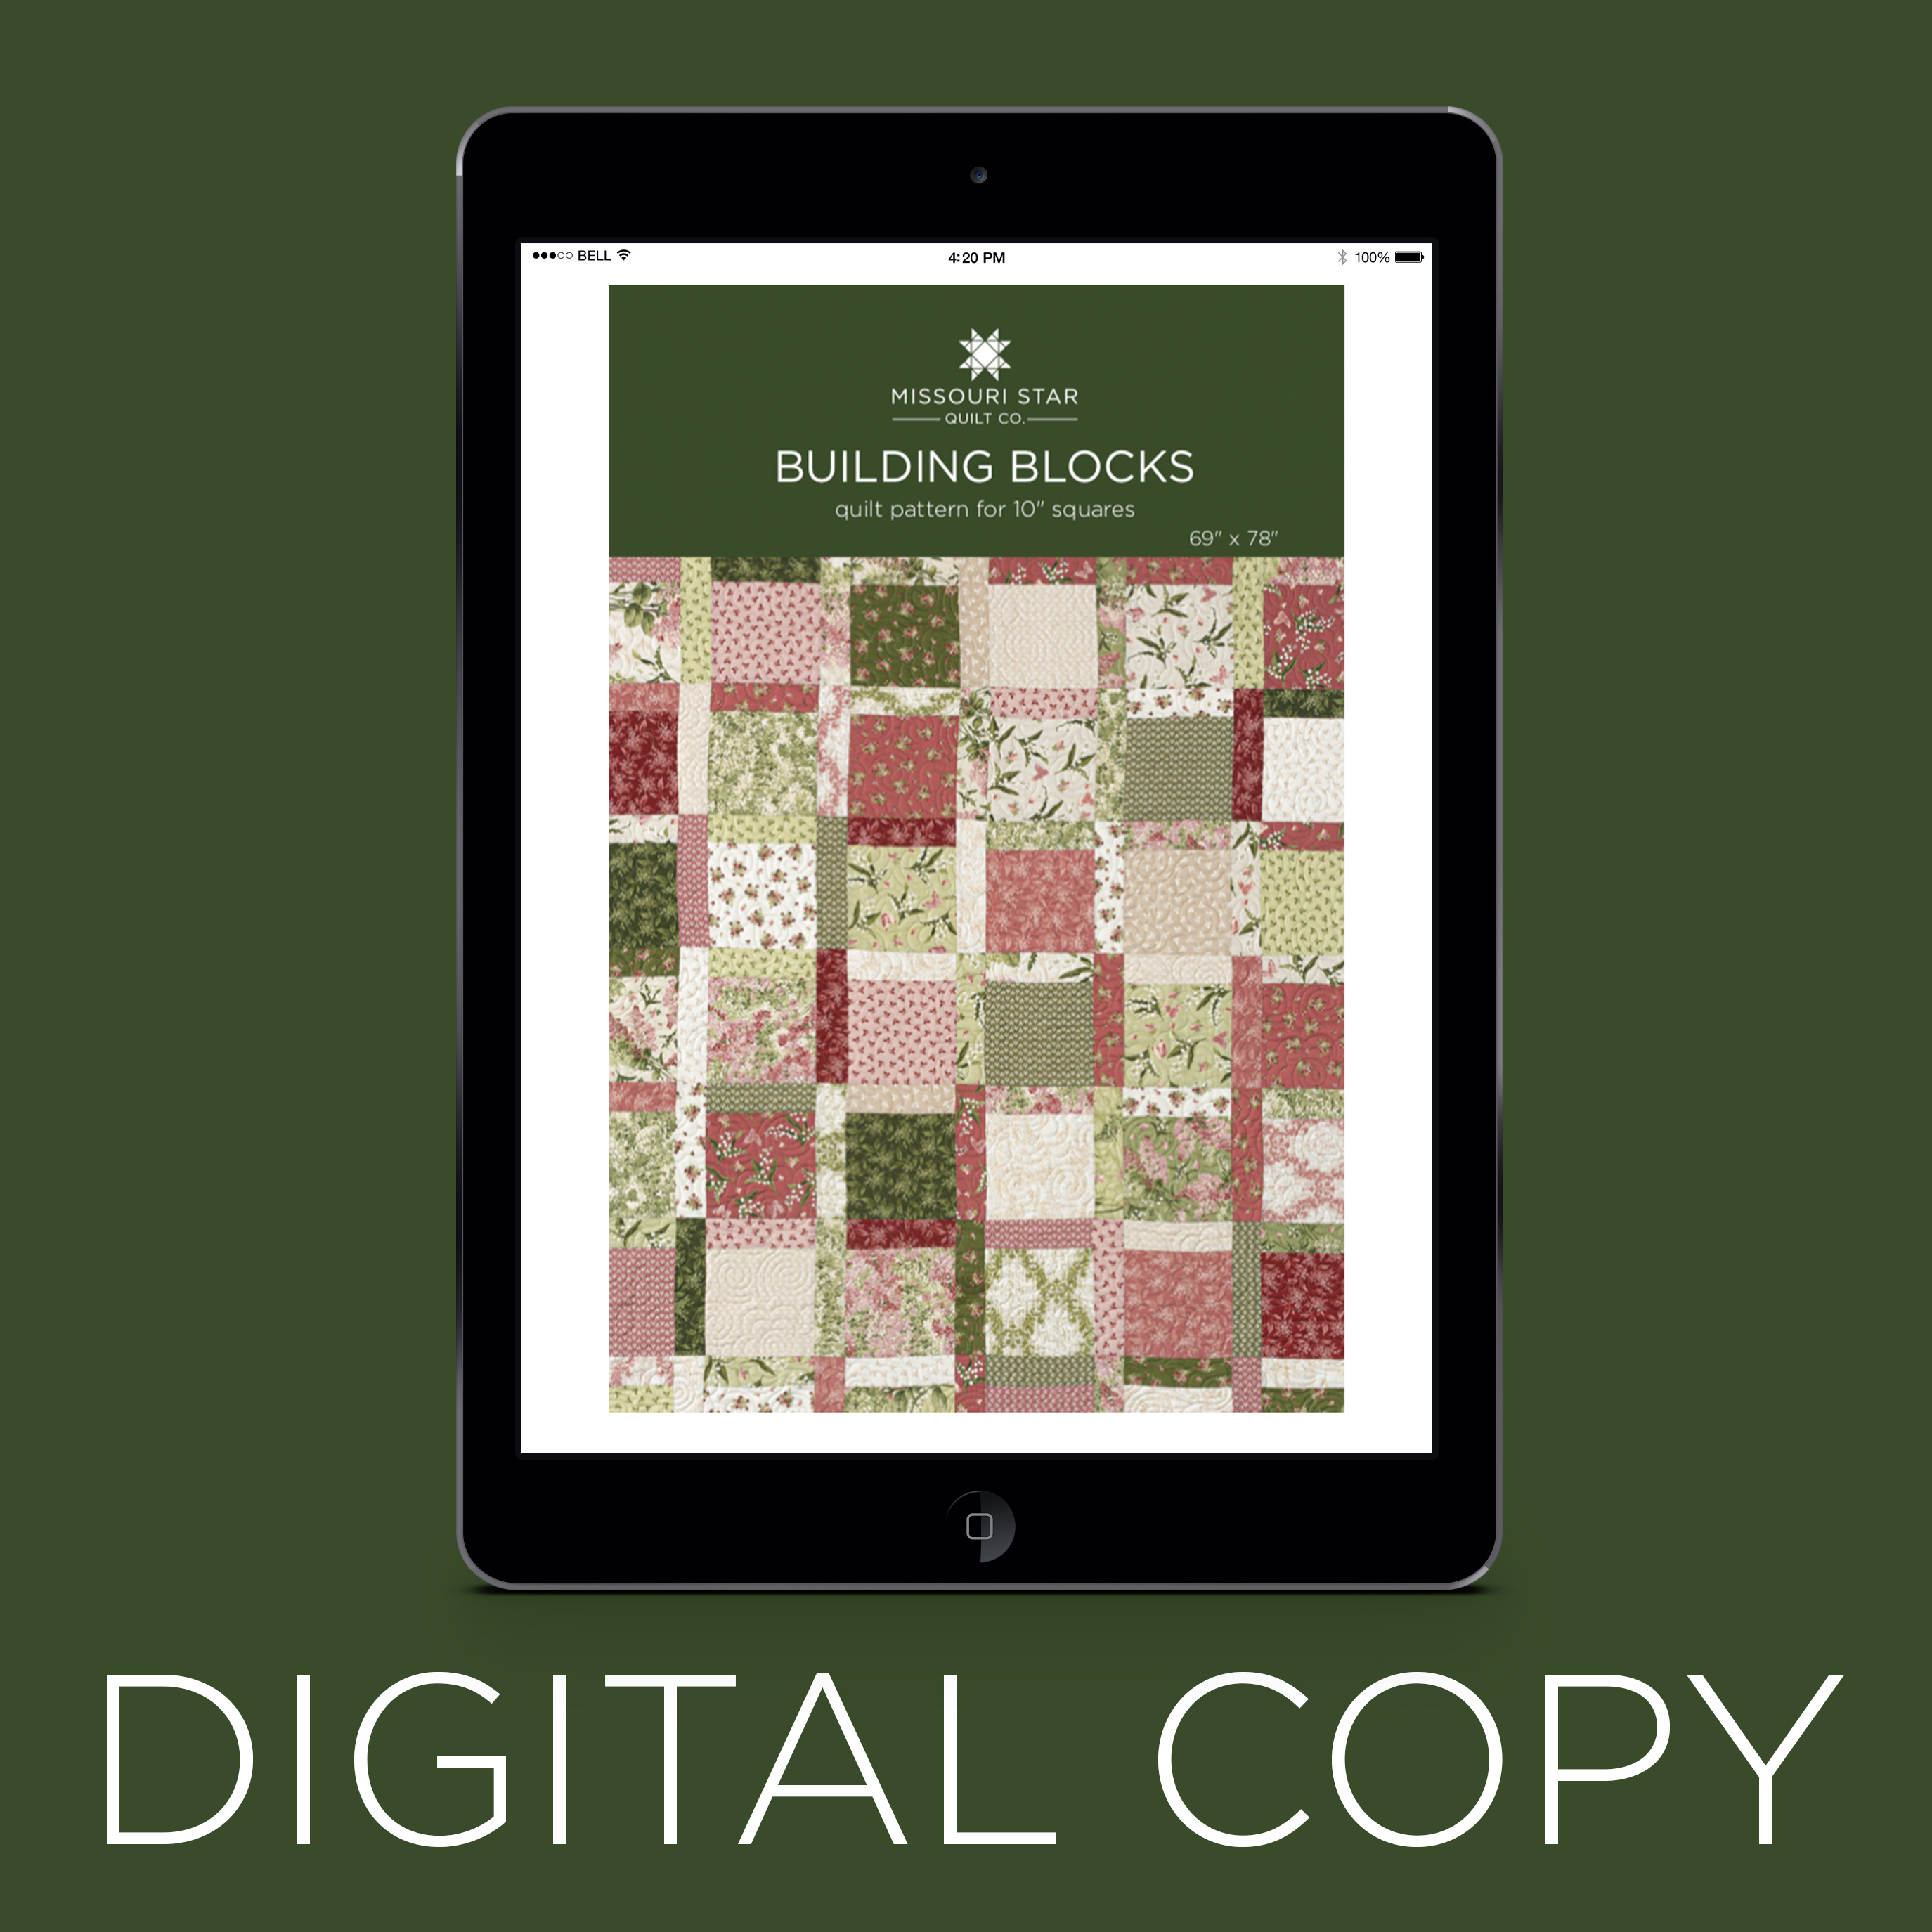 Quilt Patterns | Find Quilting Patterns for Any Project